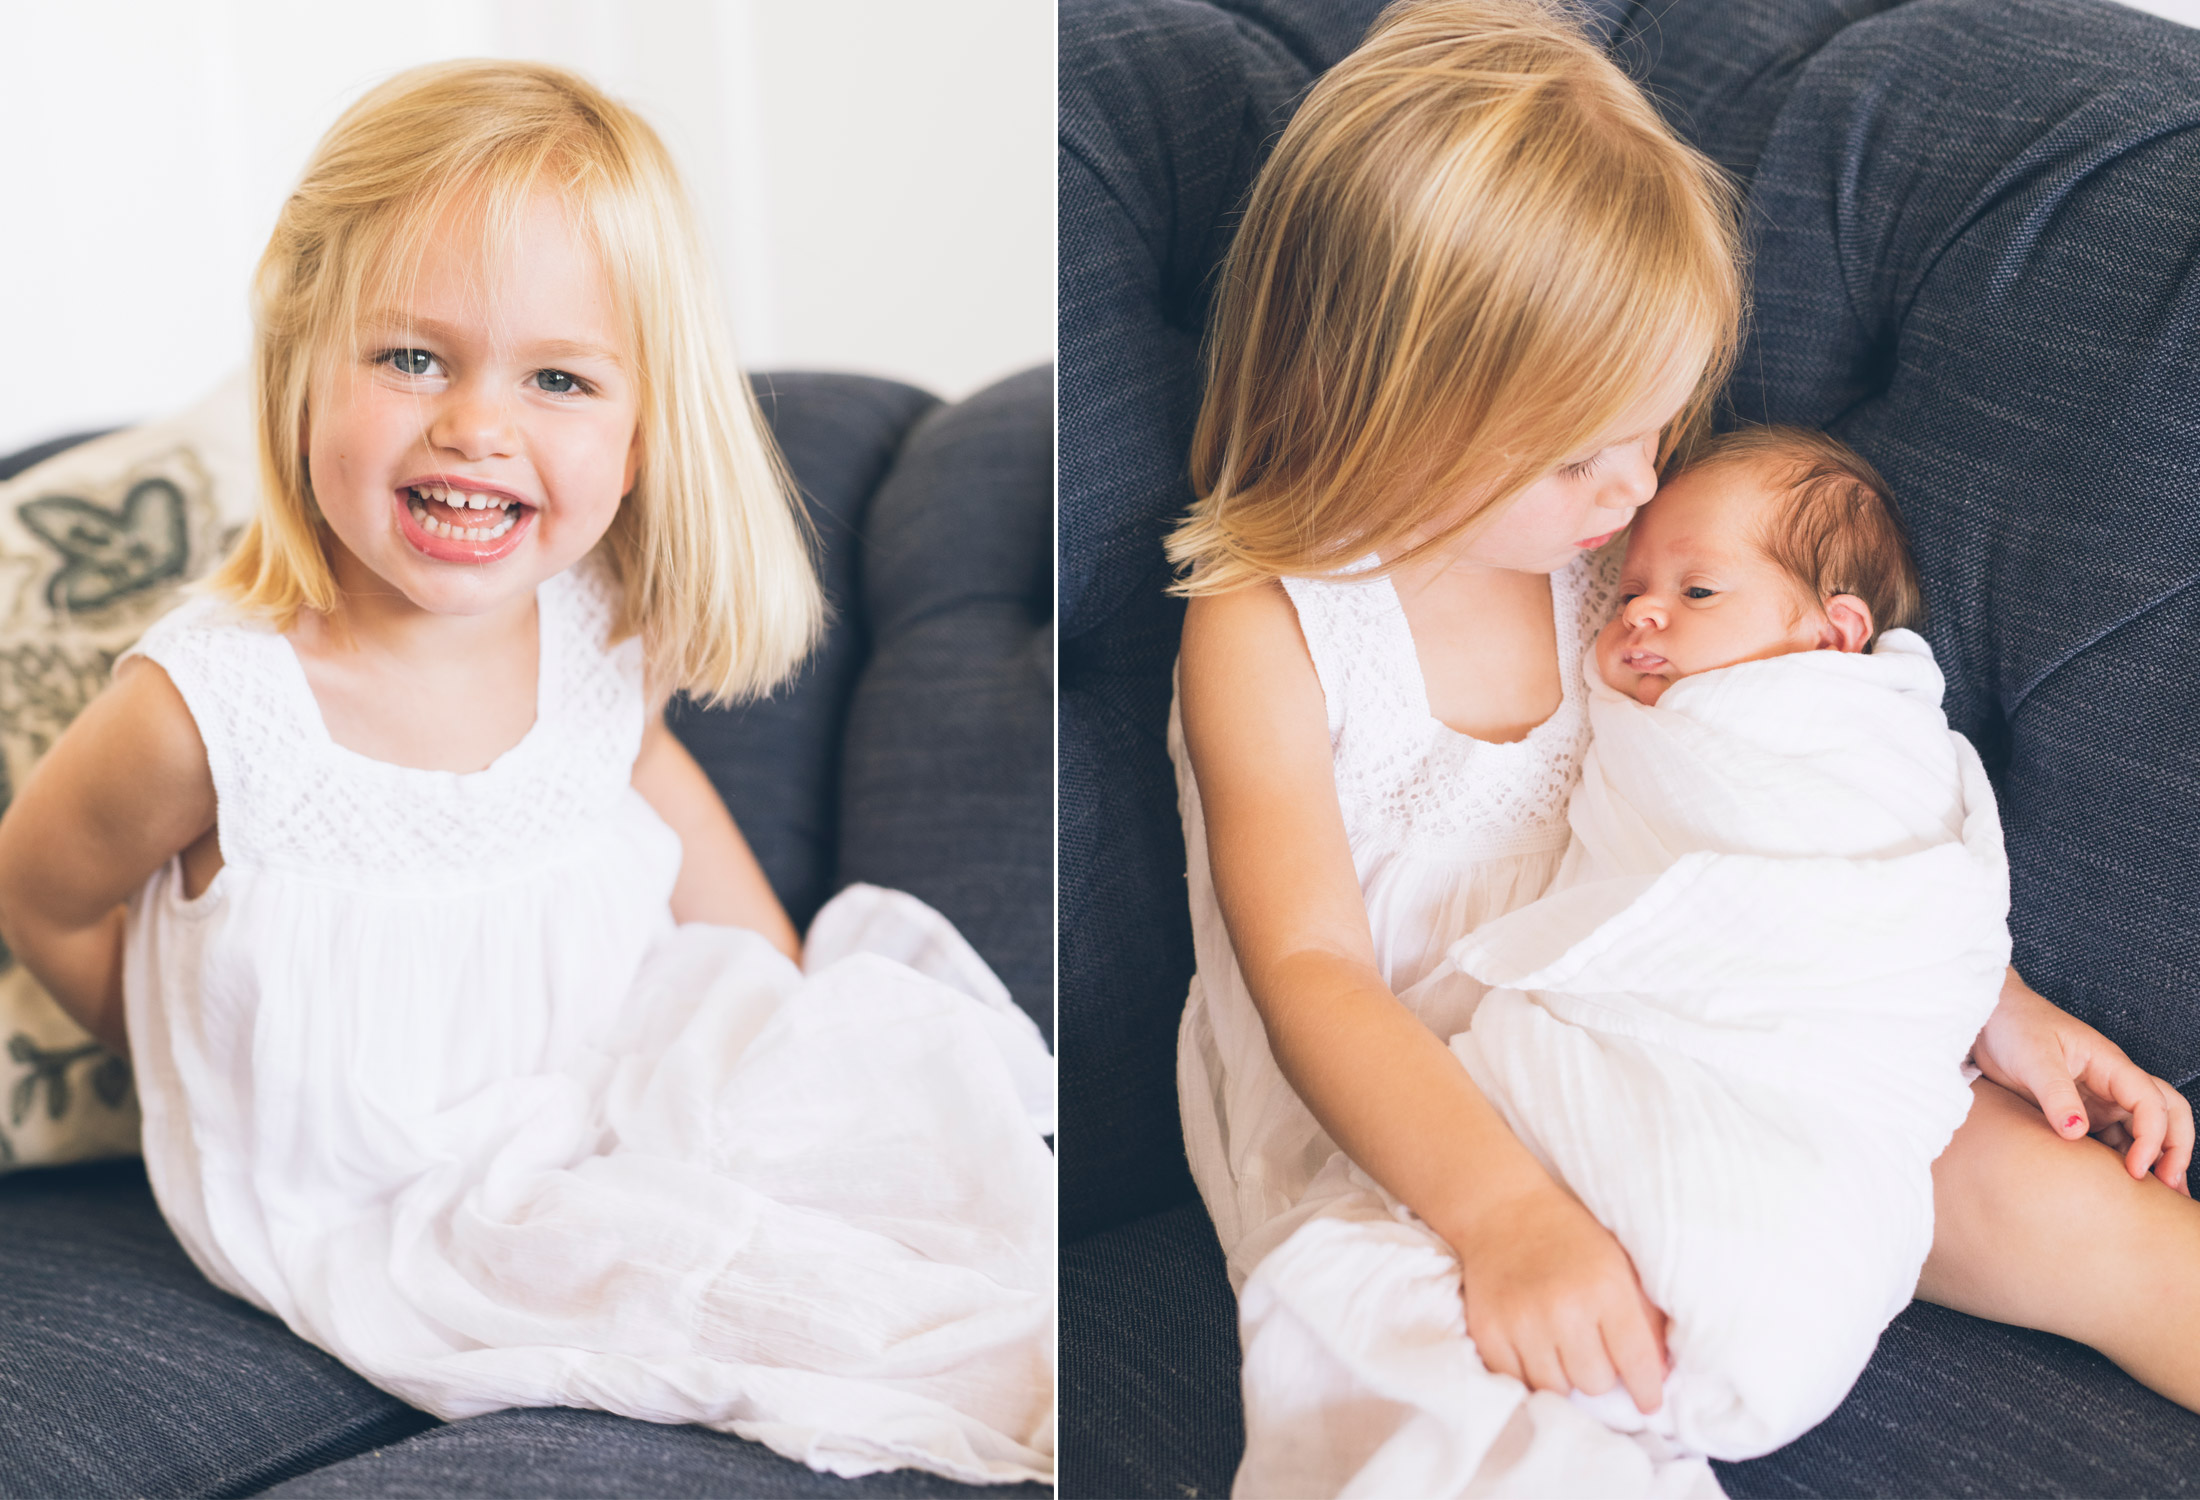 toddler-sister-with-her-newborn-baby-sister.jpg